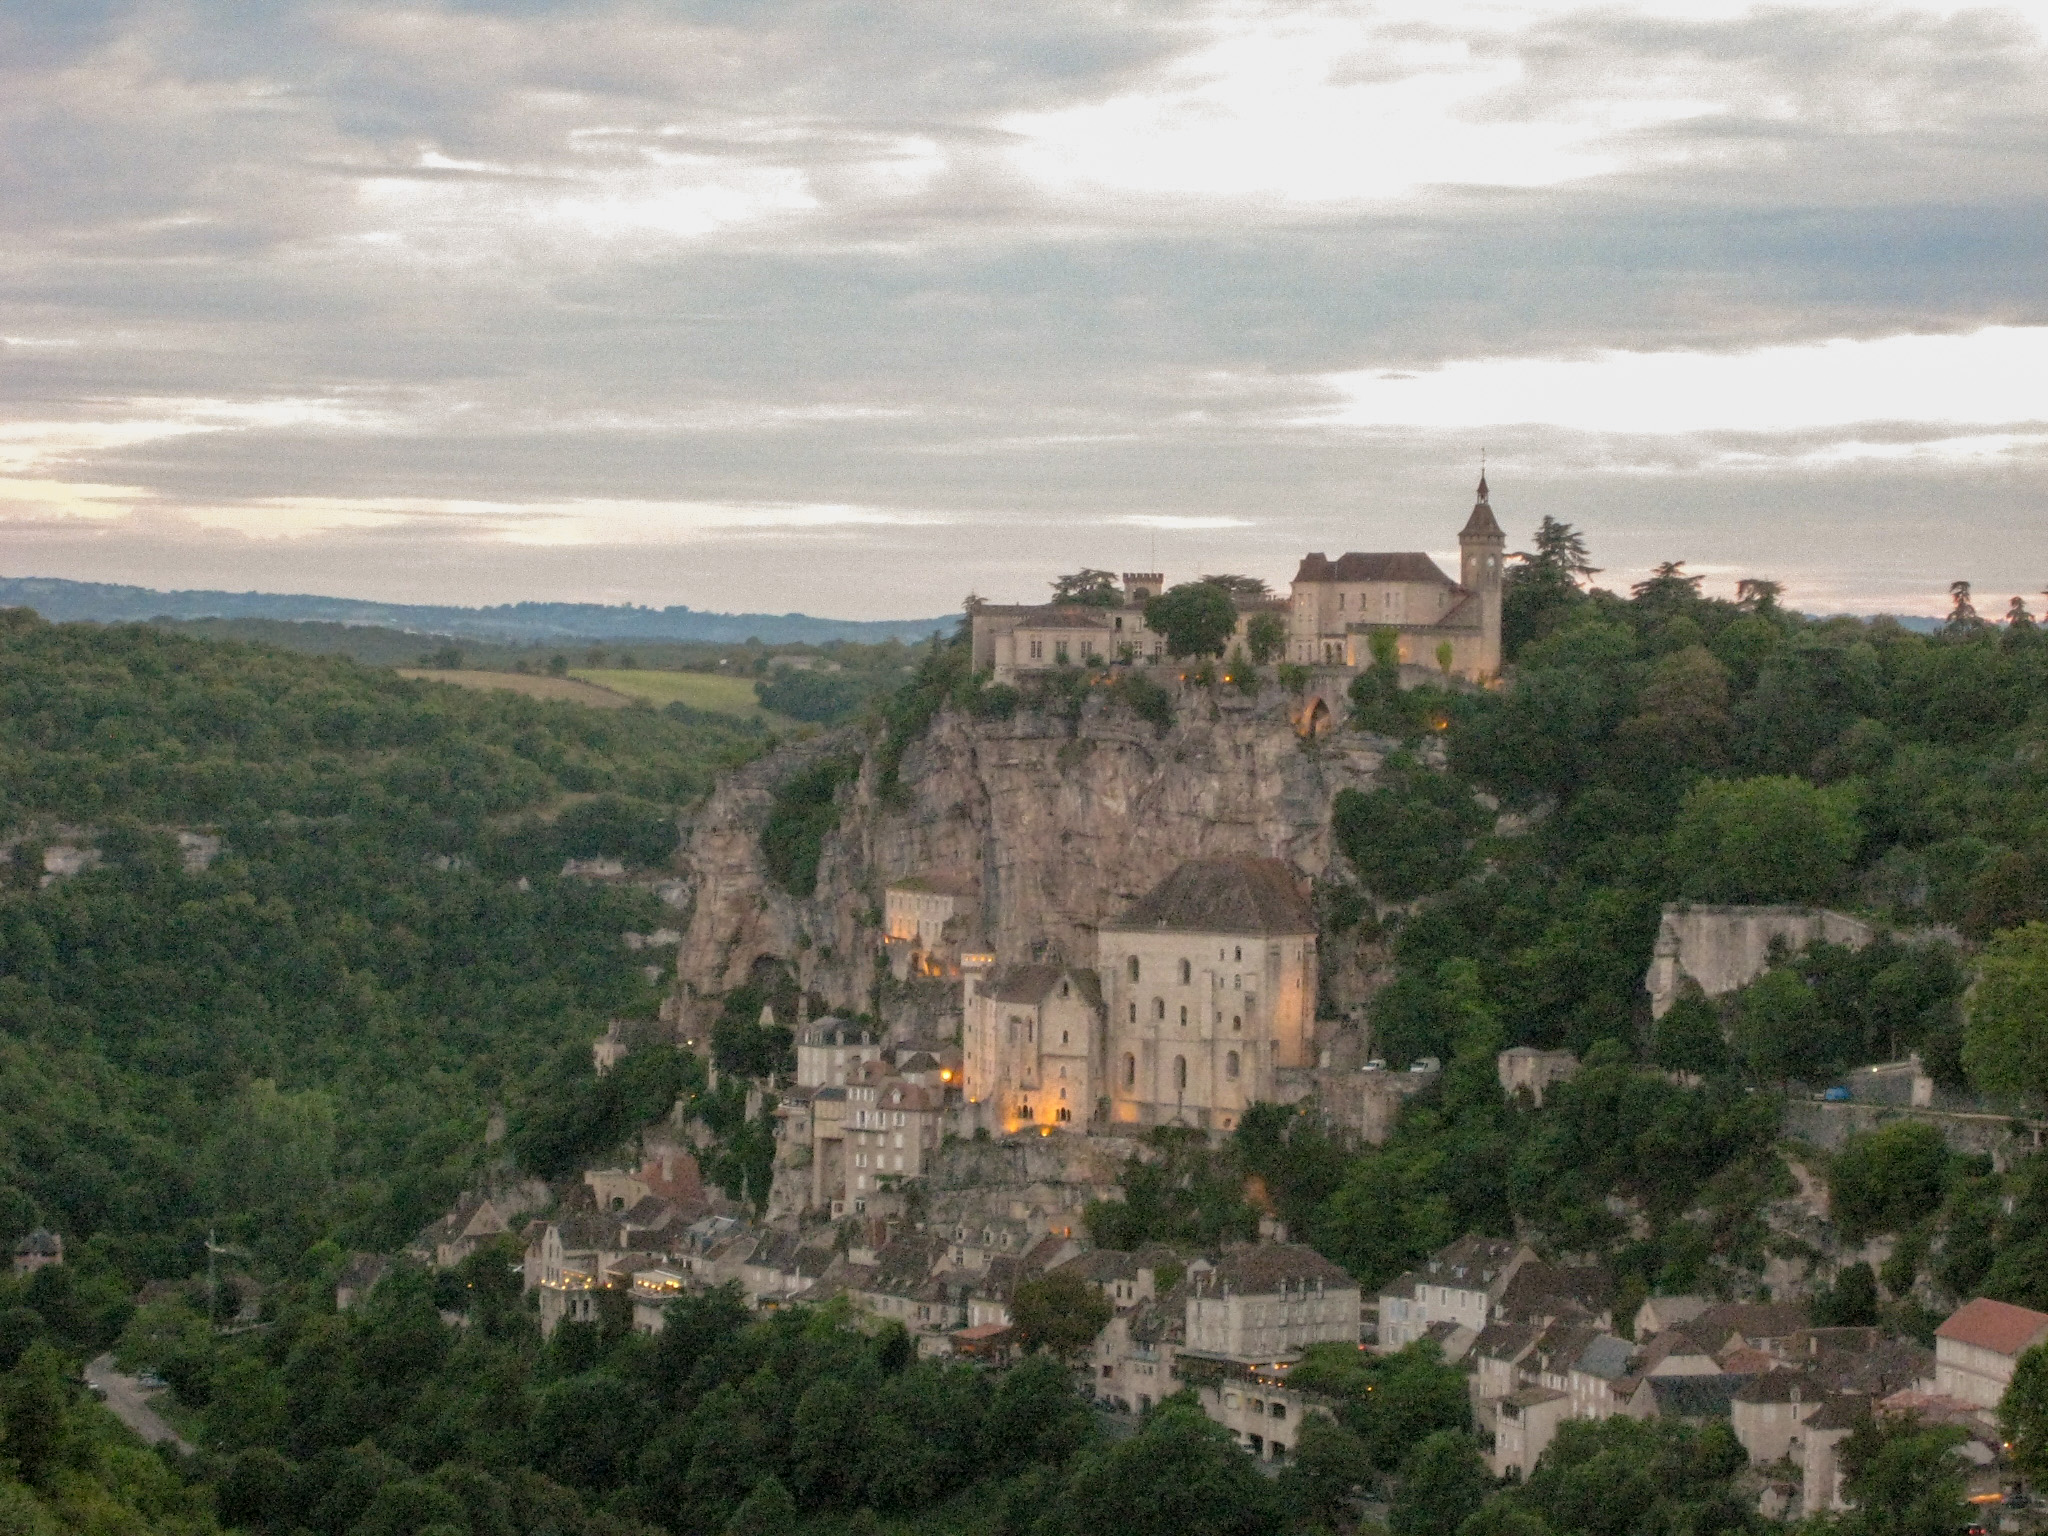 View of Rocamadour, France